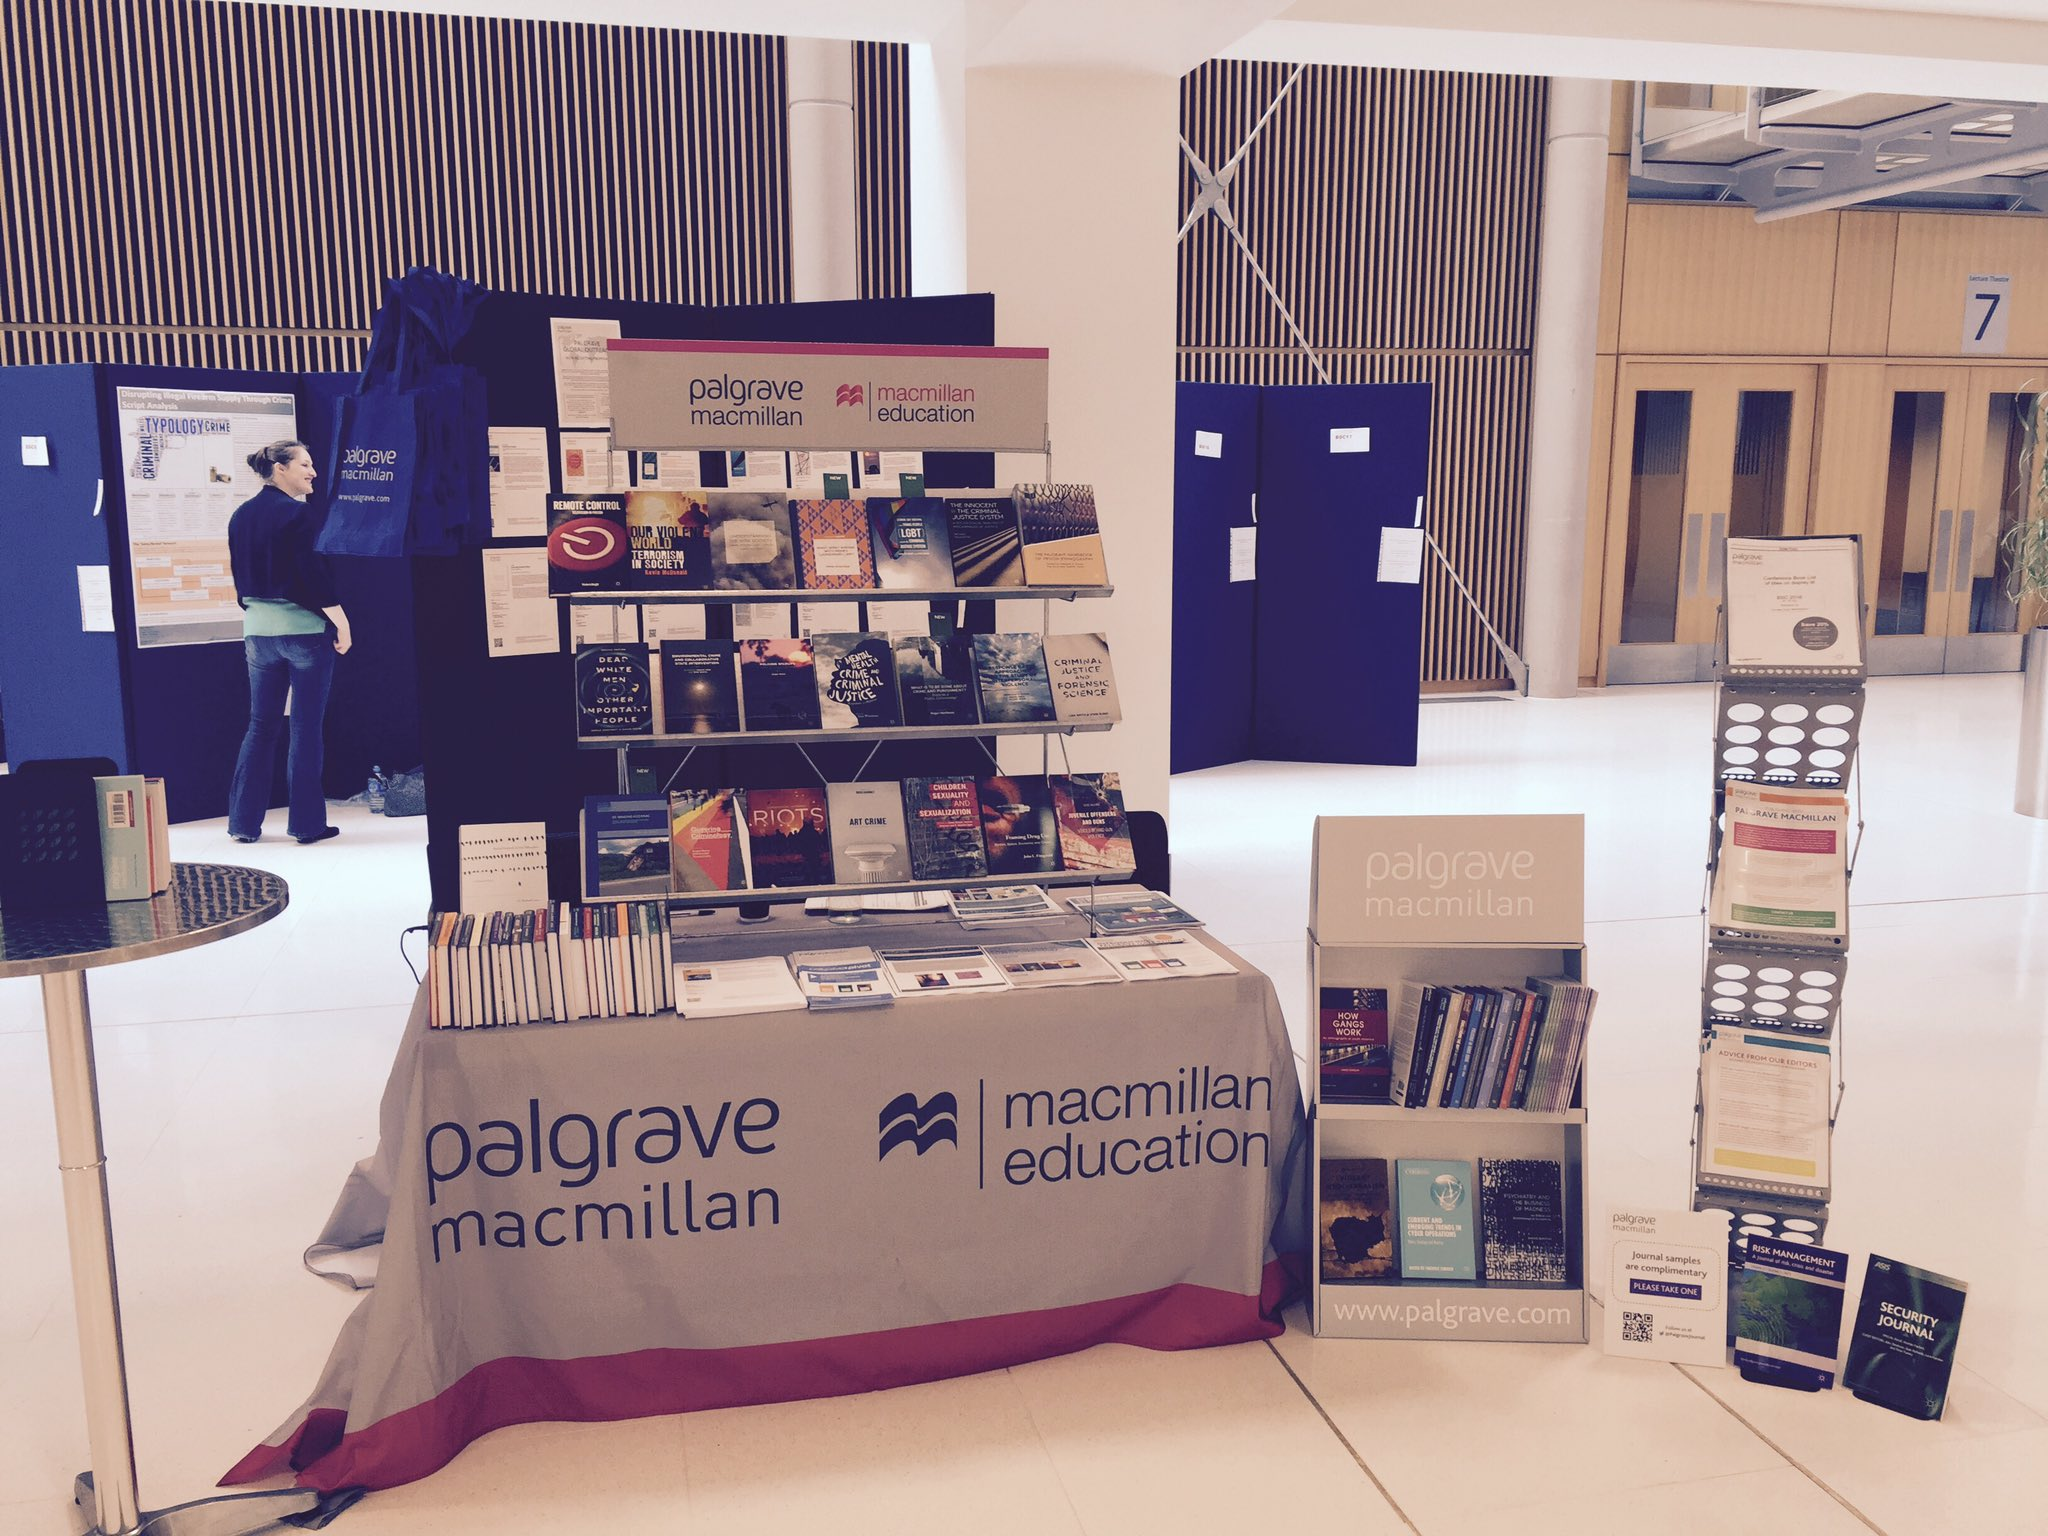 All set! What sessions are delegates looking forward to today? #palgrave #BSCConf16 https://t.co/fttHA3WvET